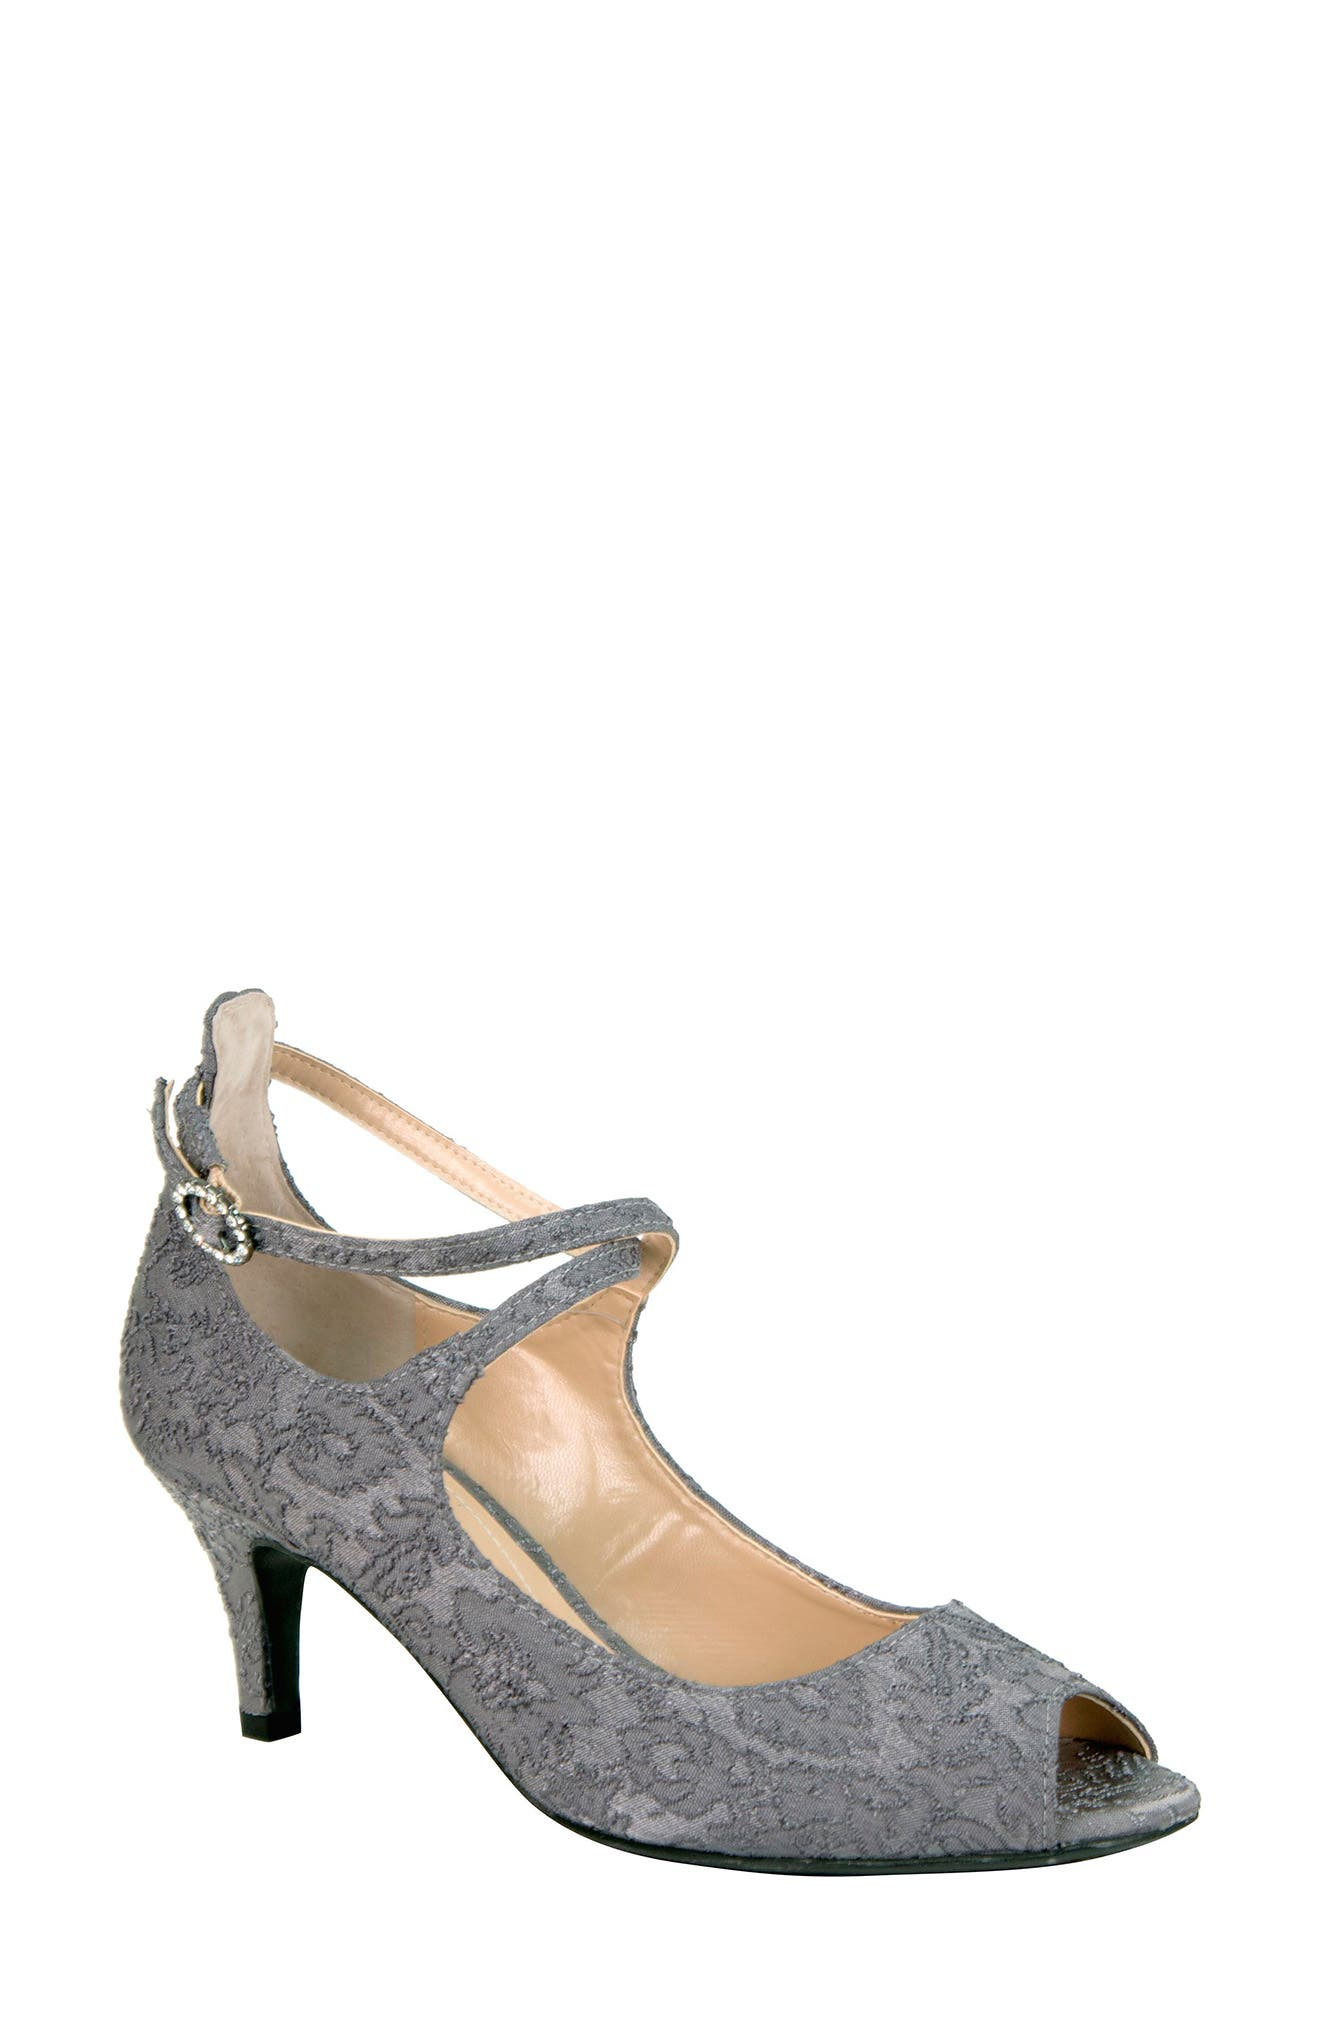 Alternate Image 1 Selected - J. Reneé Rolyne Peep Toe Pump (Women)